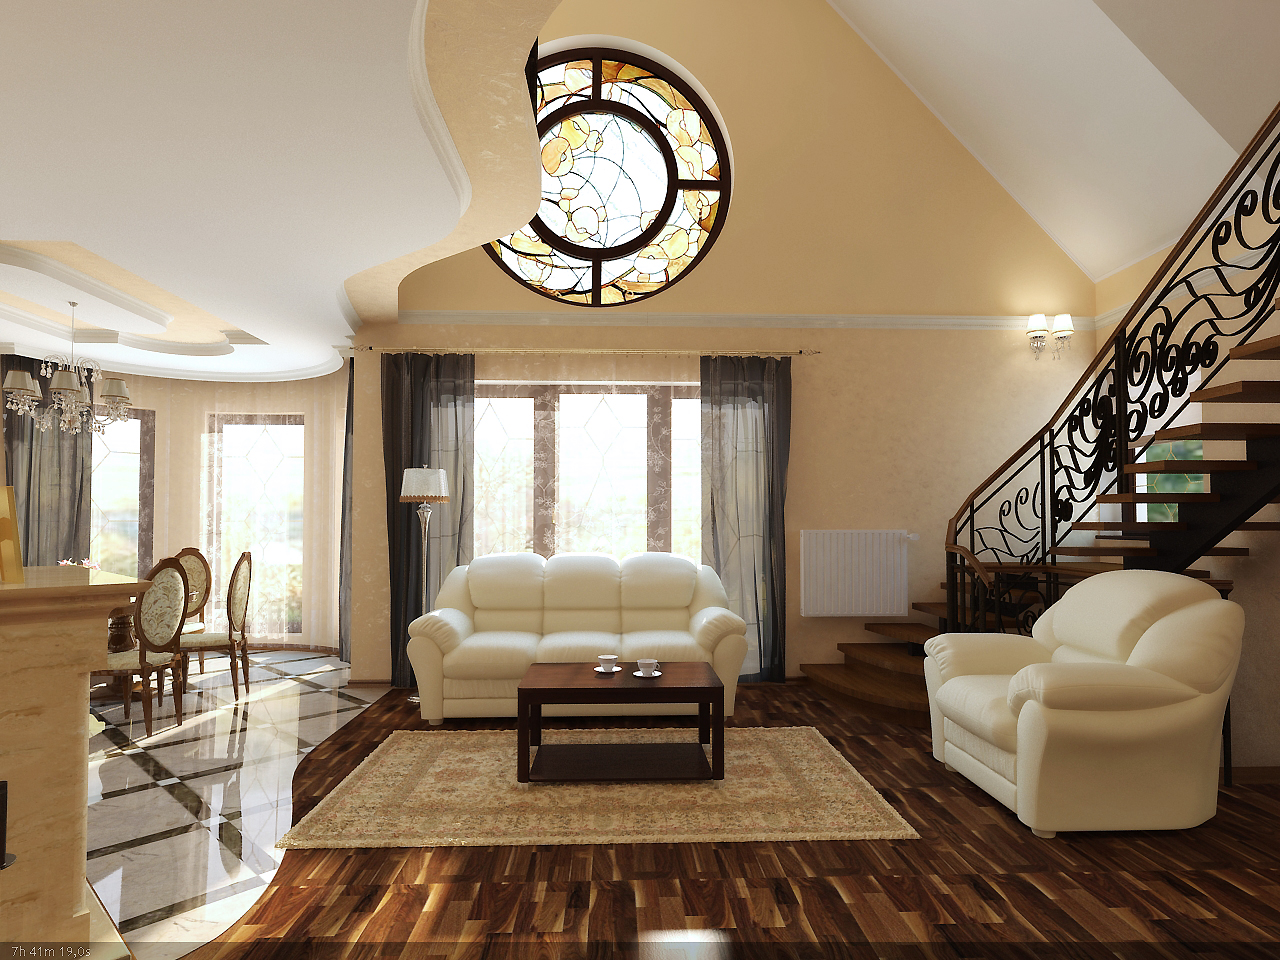 classic home interior - Design Interior Home